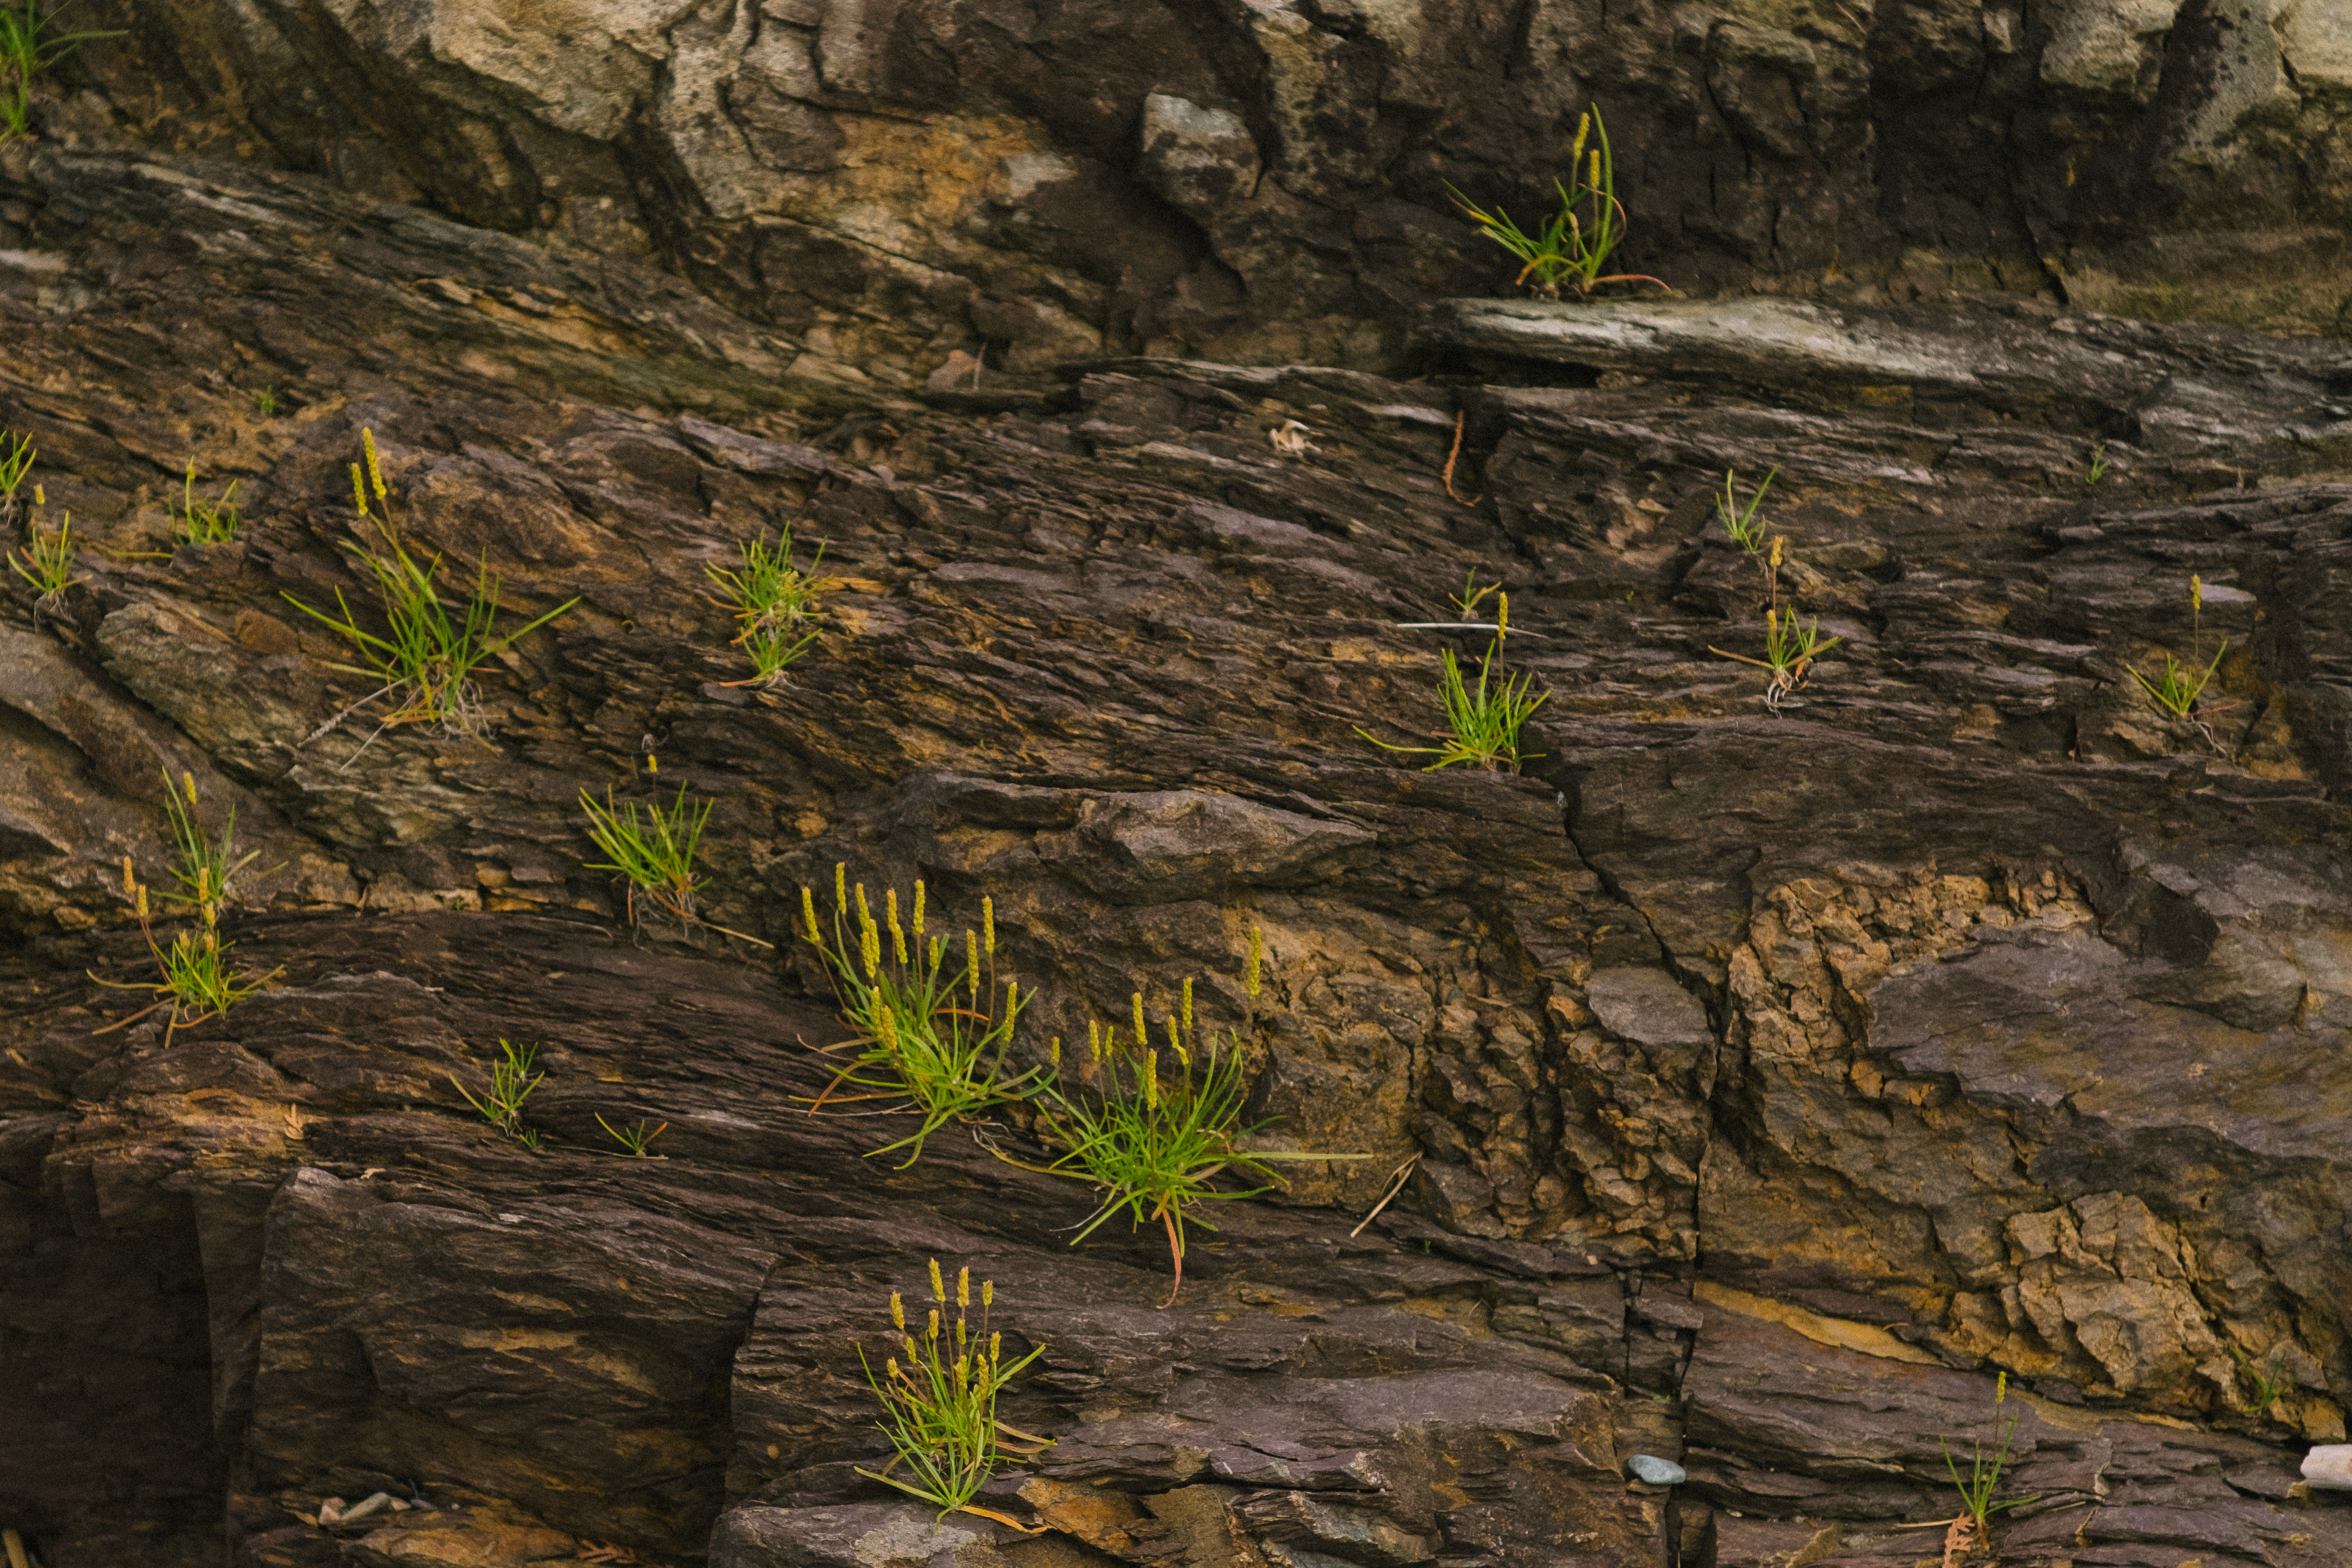 Rock Face with Green Plants